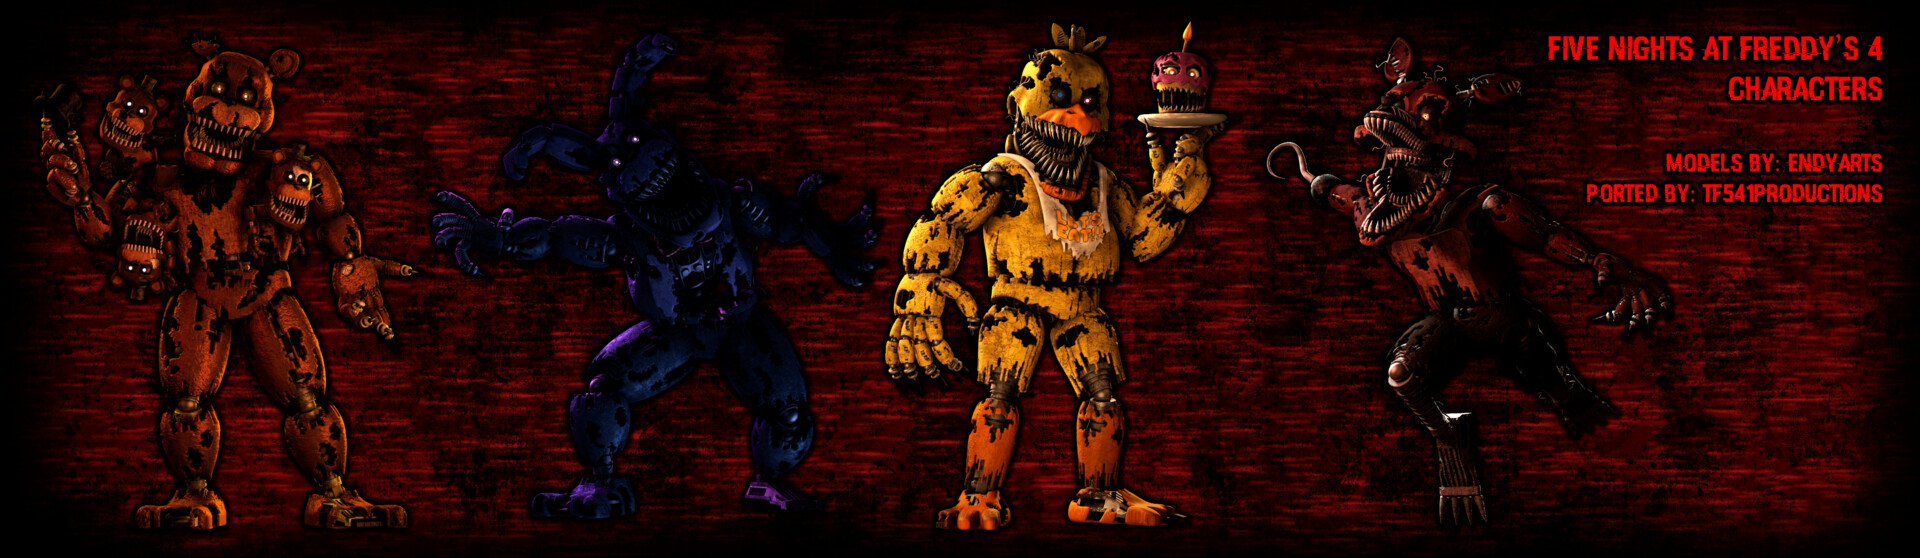 Artstation Five Nights At Freddy S 4 Character Model Pack